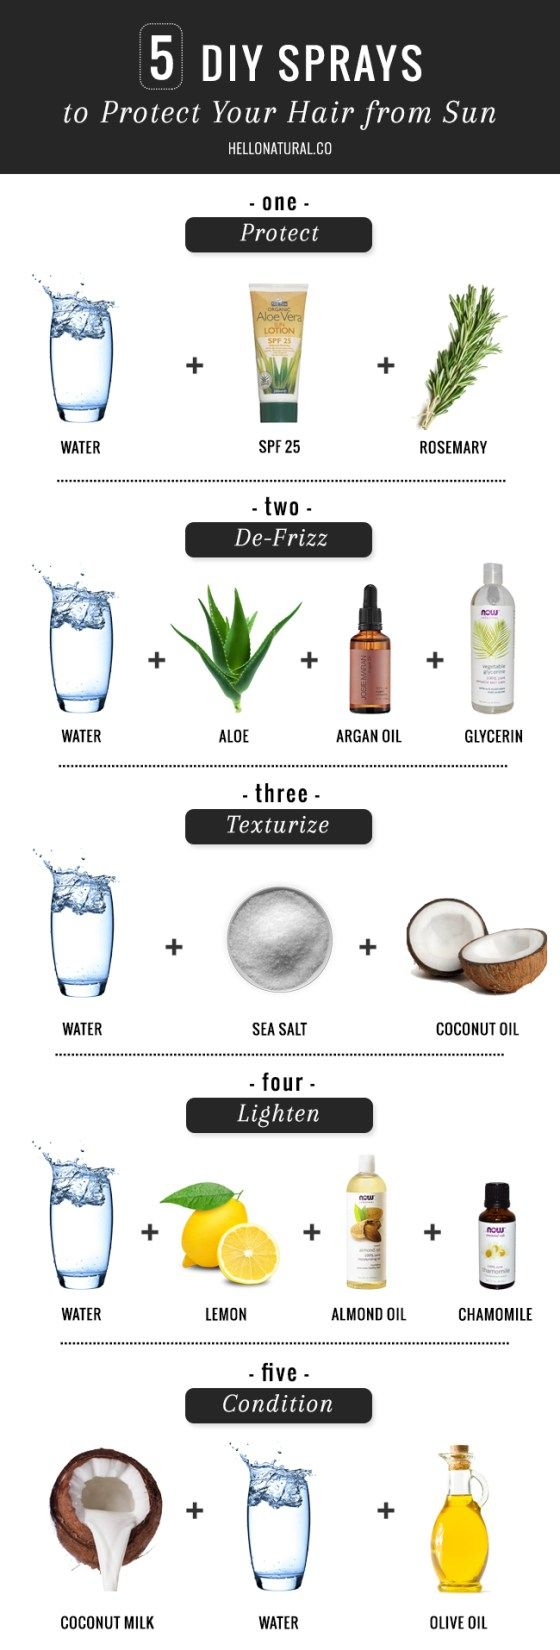 5 diy sprays to protect your hair from the sun